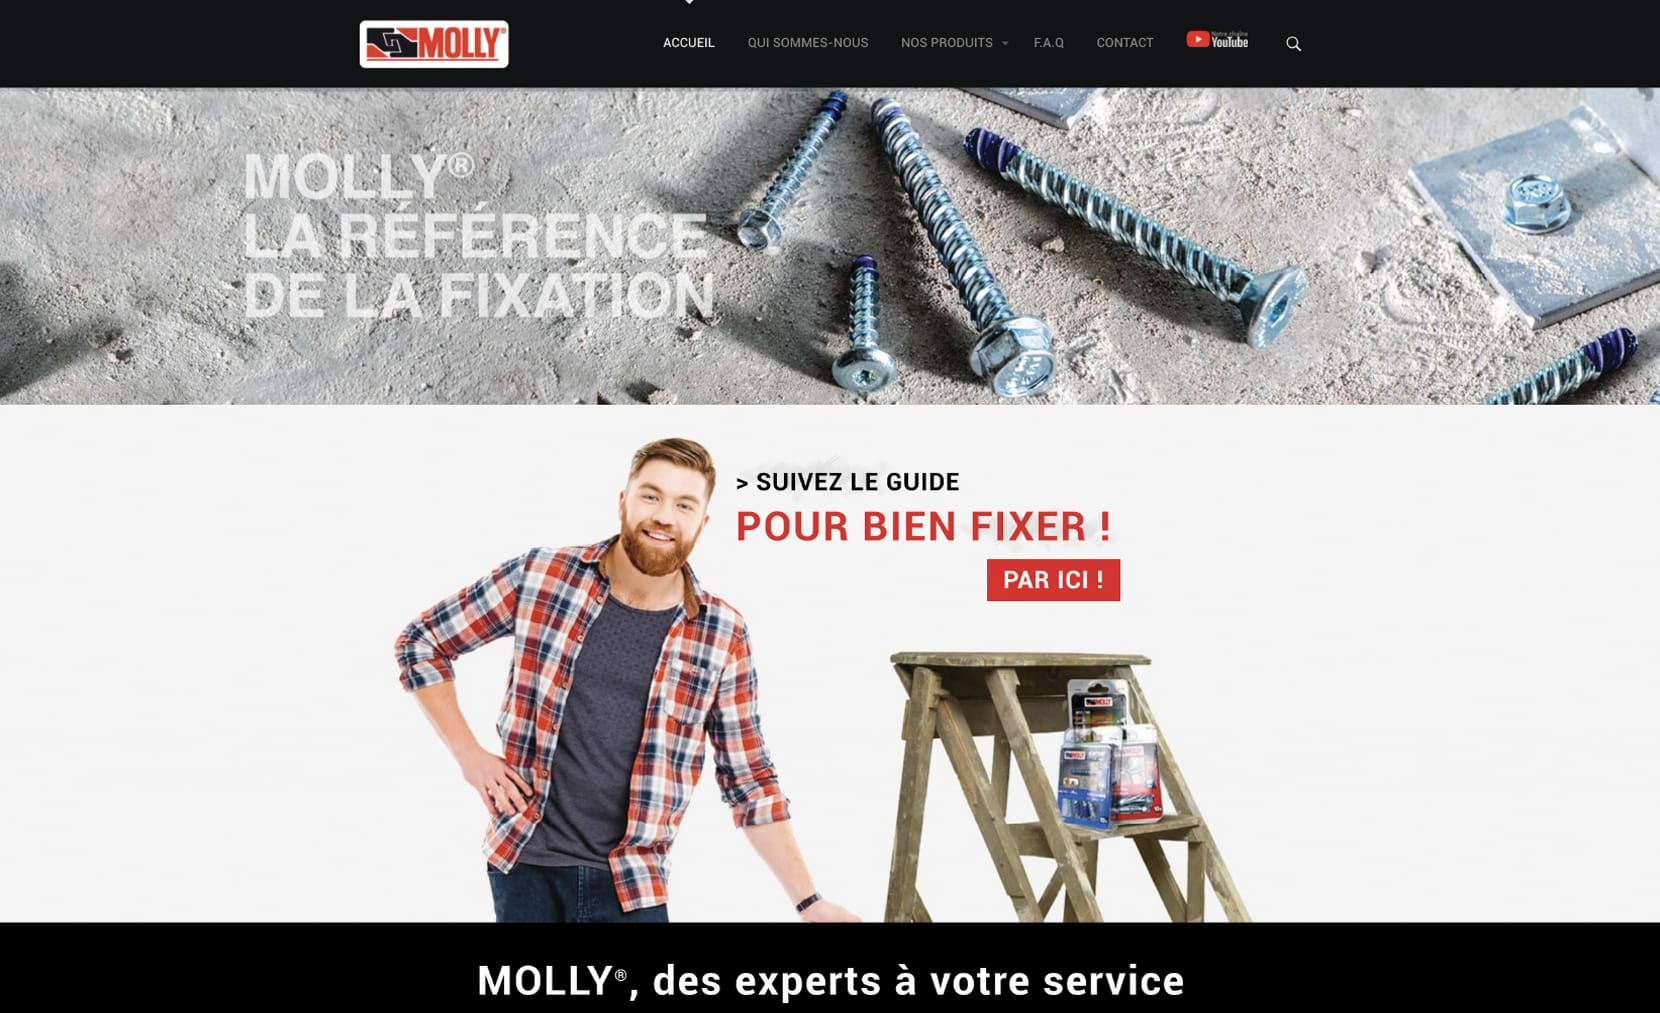 molly-site-accueil